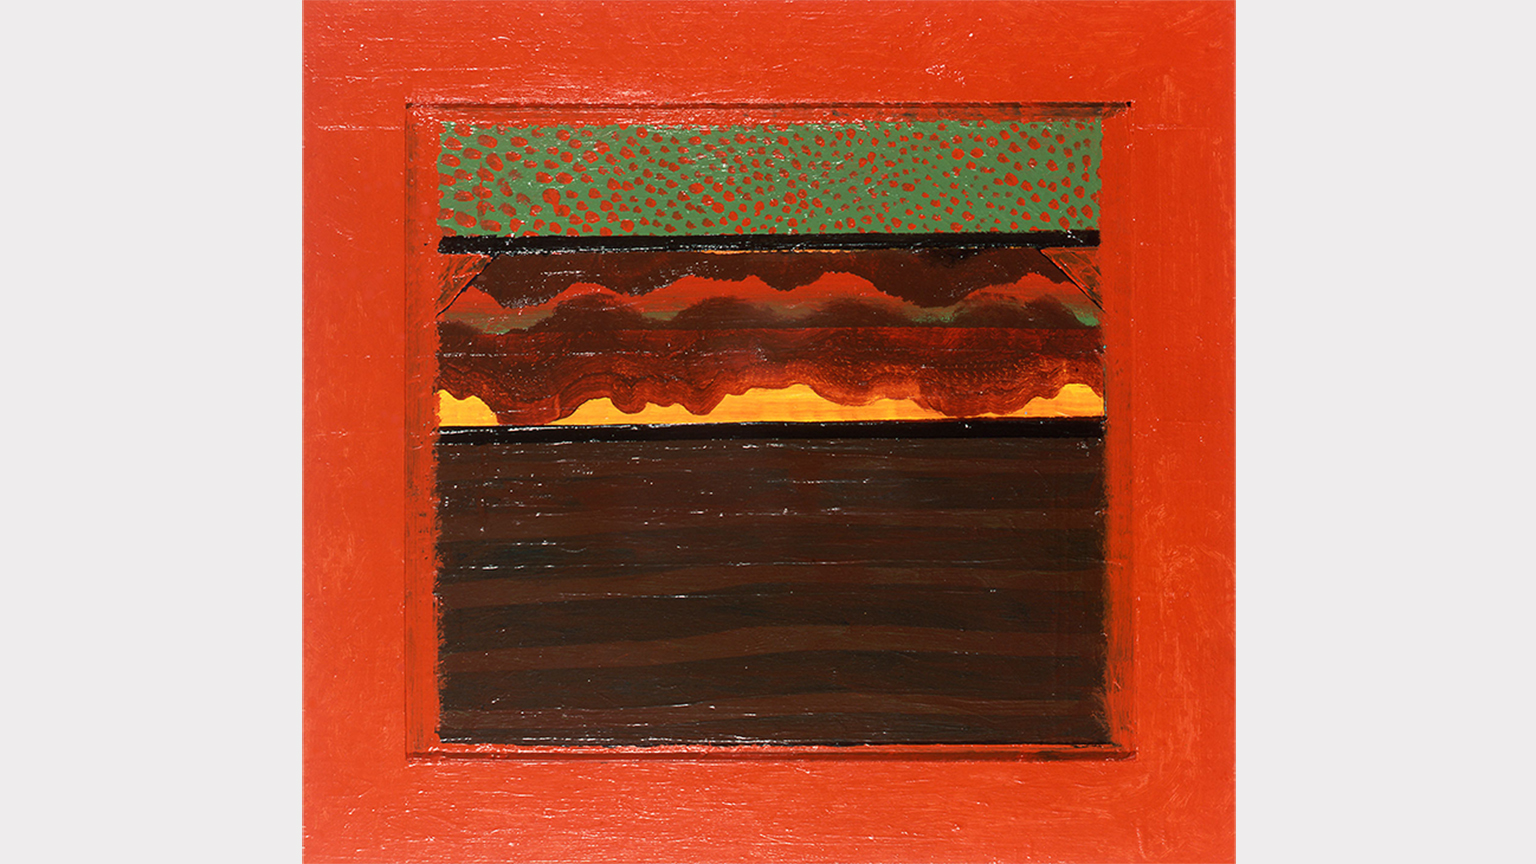 Howard Hodgkin, Bombay Sunset, 1972-73